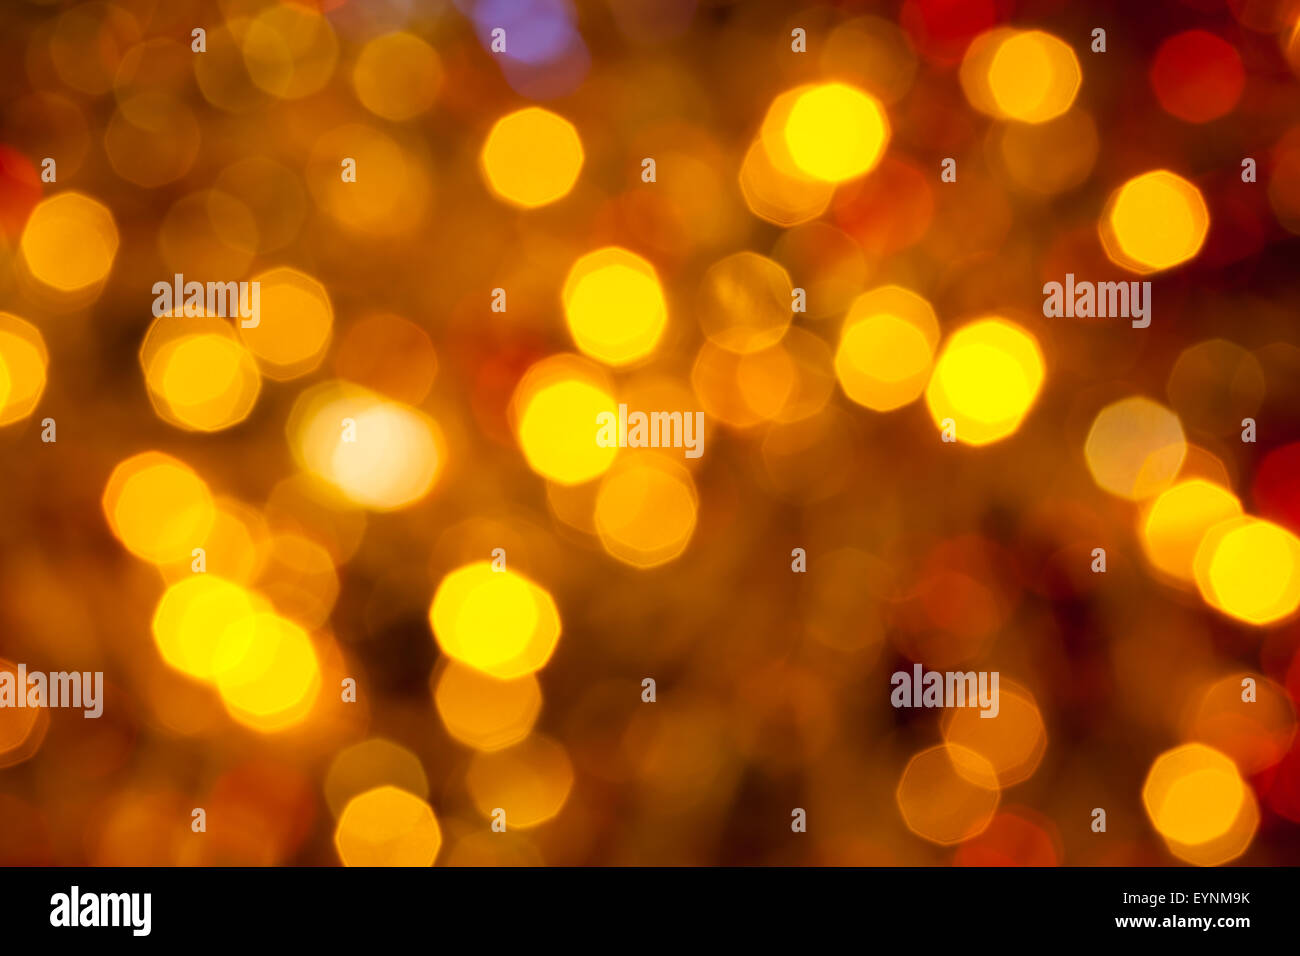 abstract blurred background - dark brown, yellow and red flickering Christmas lights of electric garlands on Xmas - Stock Image